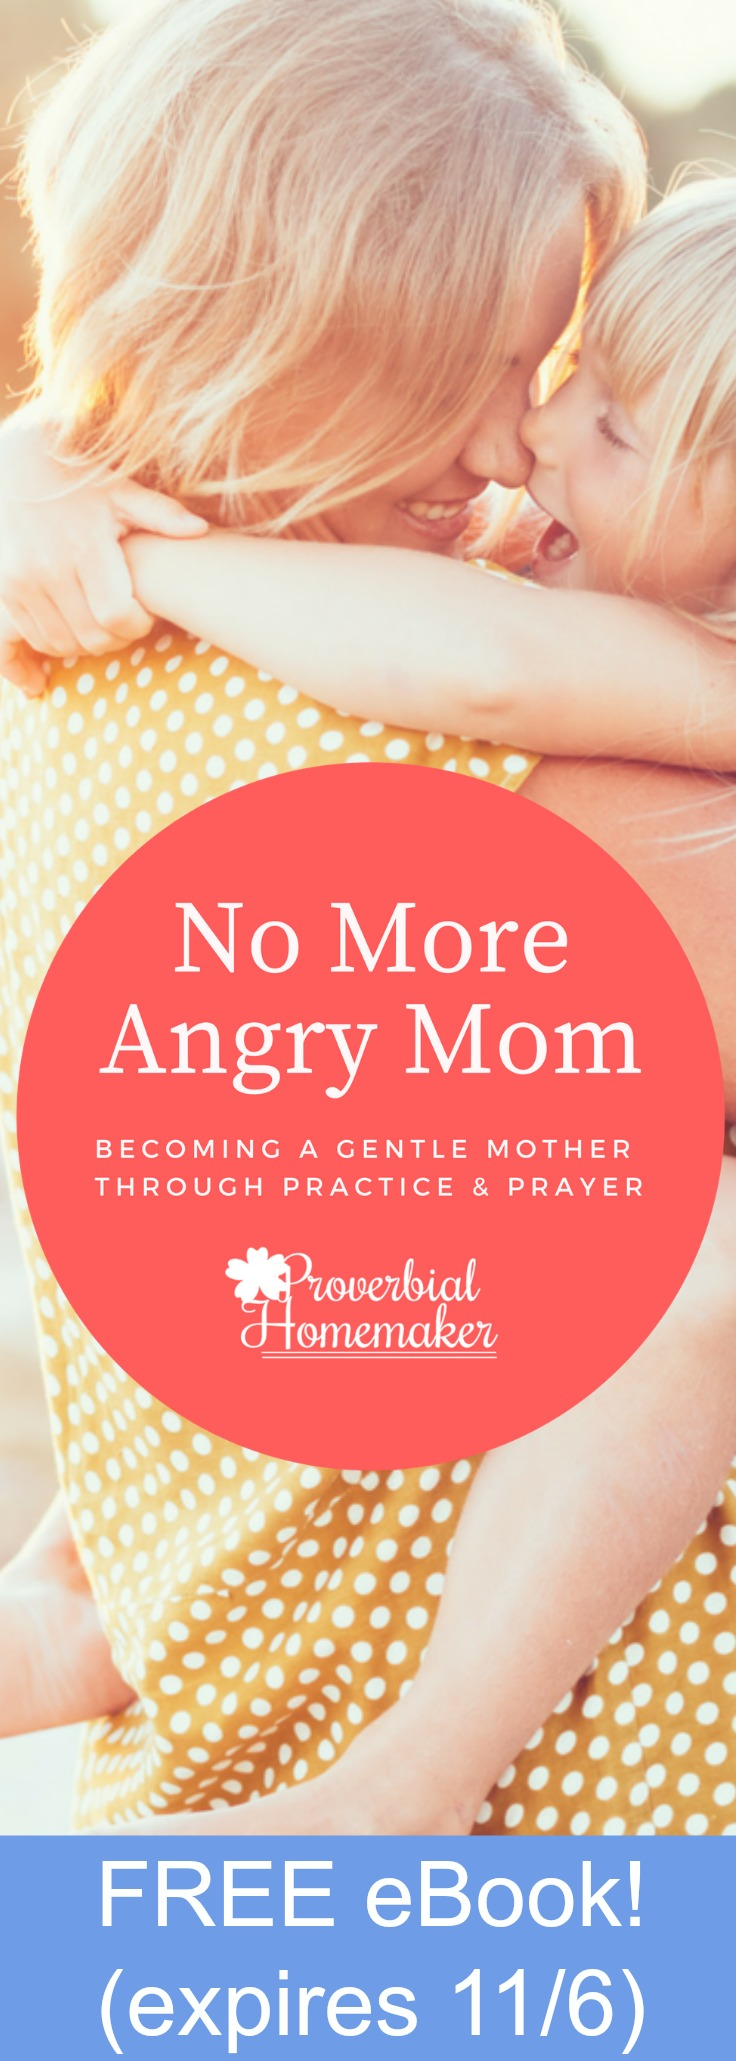 No More Angry Mom: Becoming a Gentle Mother Through Practice & Prayer